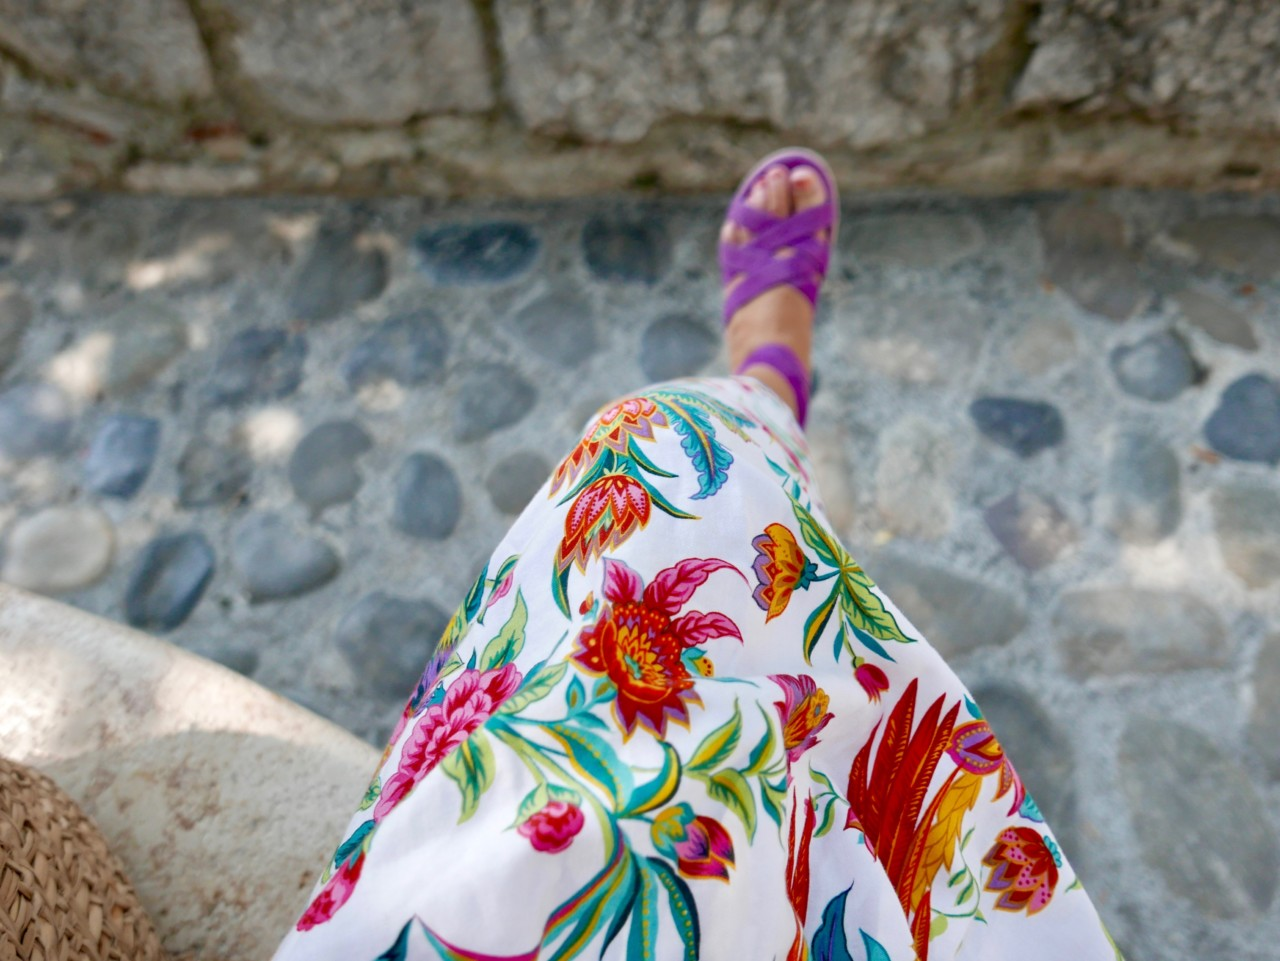 flower-sun-dress-purple-sandals-anja-stang